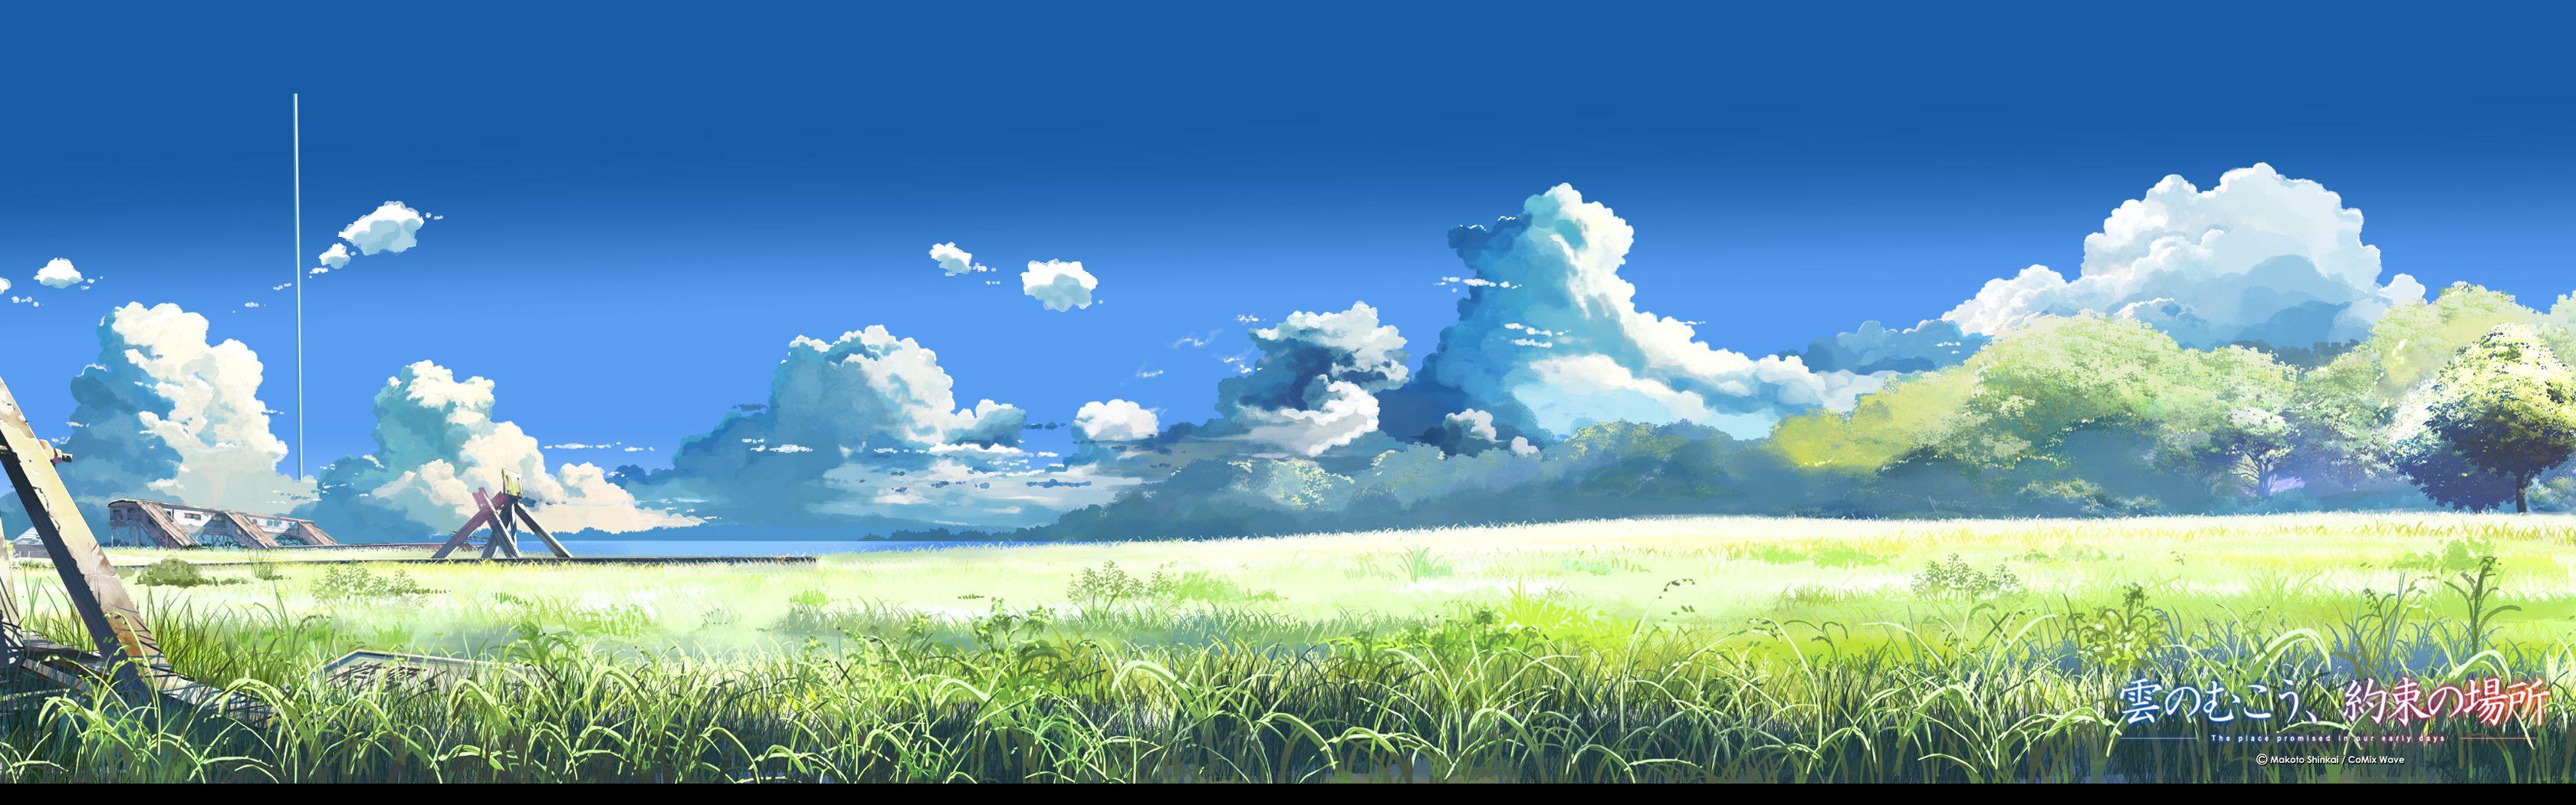 3360x1050 Piinl - I just want to point out that there was a blue and...